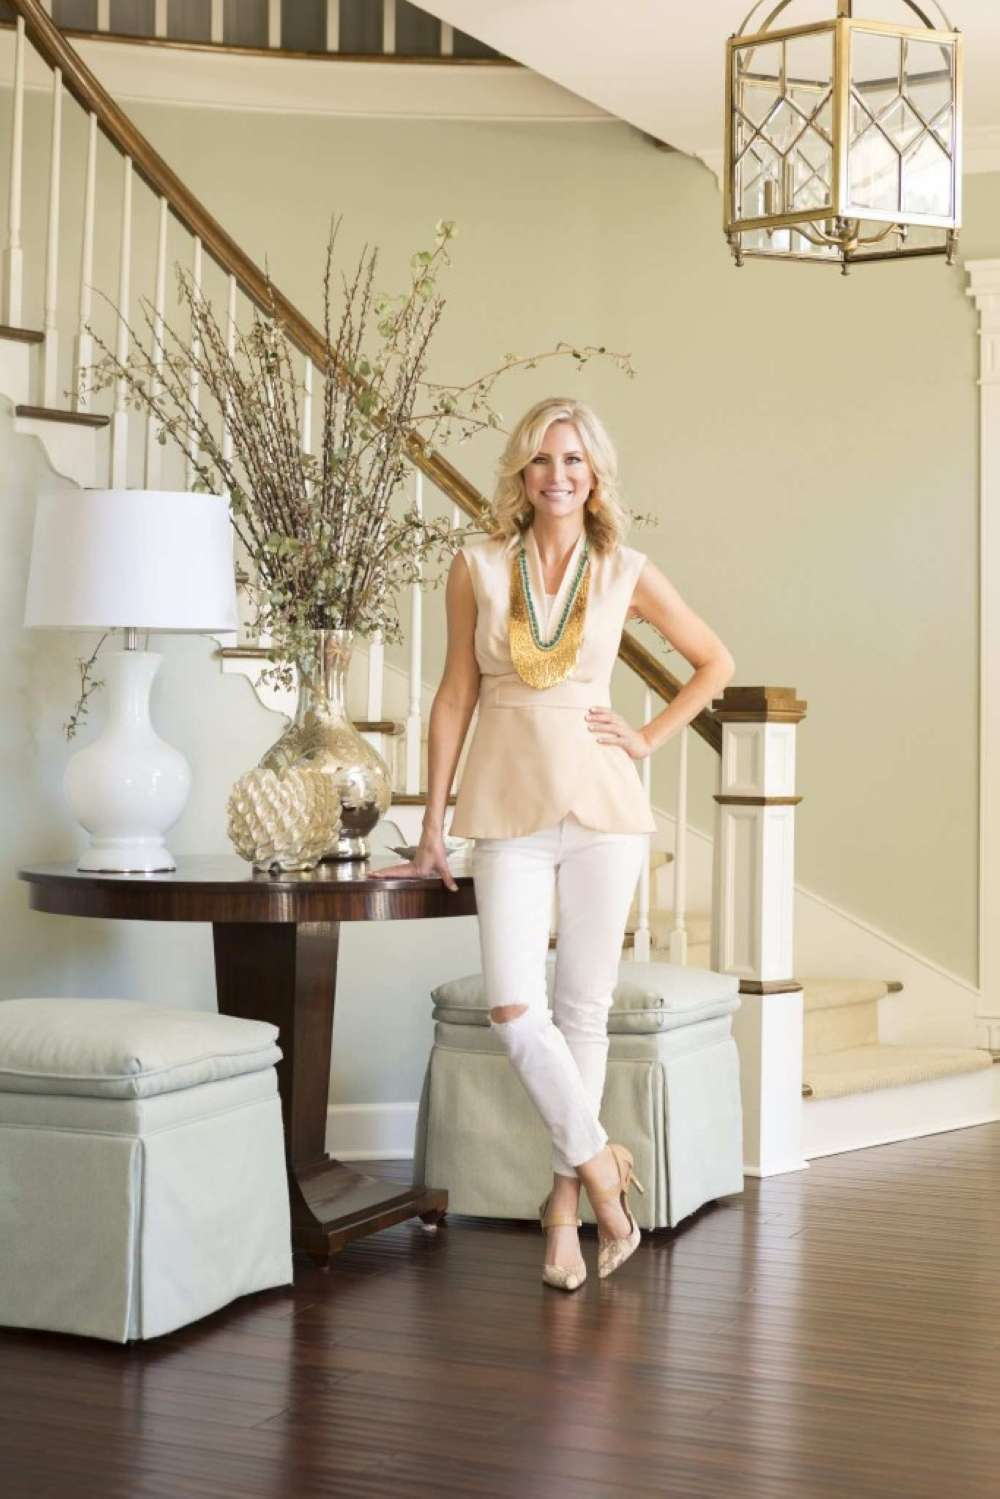 Krista-Lewis-Interior-Design-arkansas-Fashionably-Functional_007Optmized